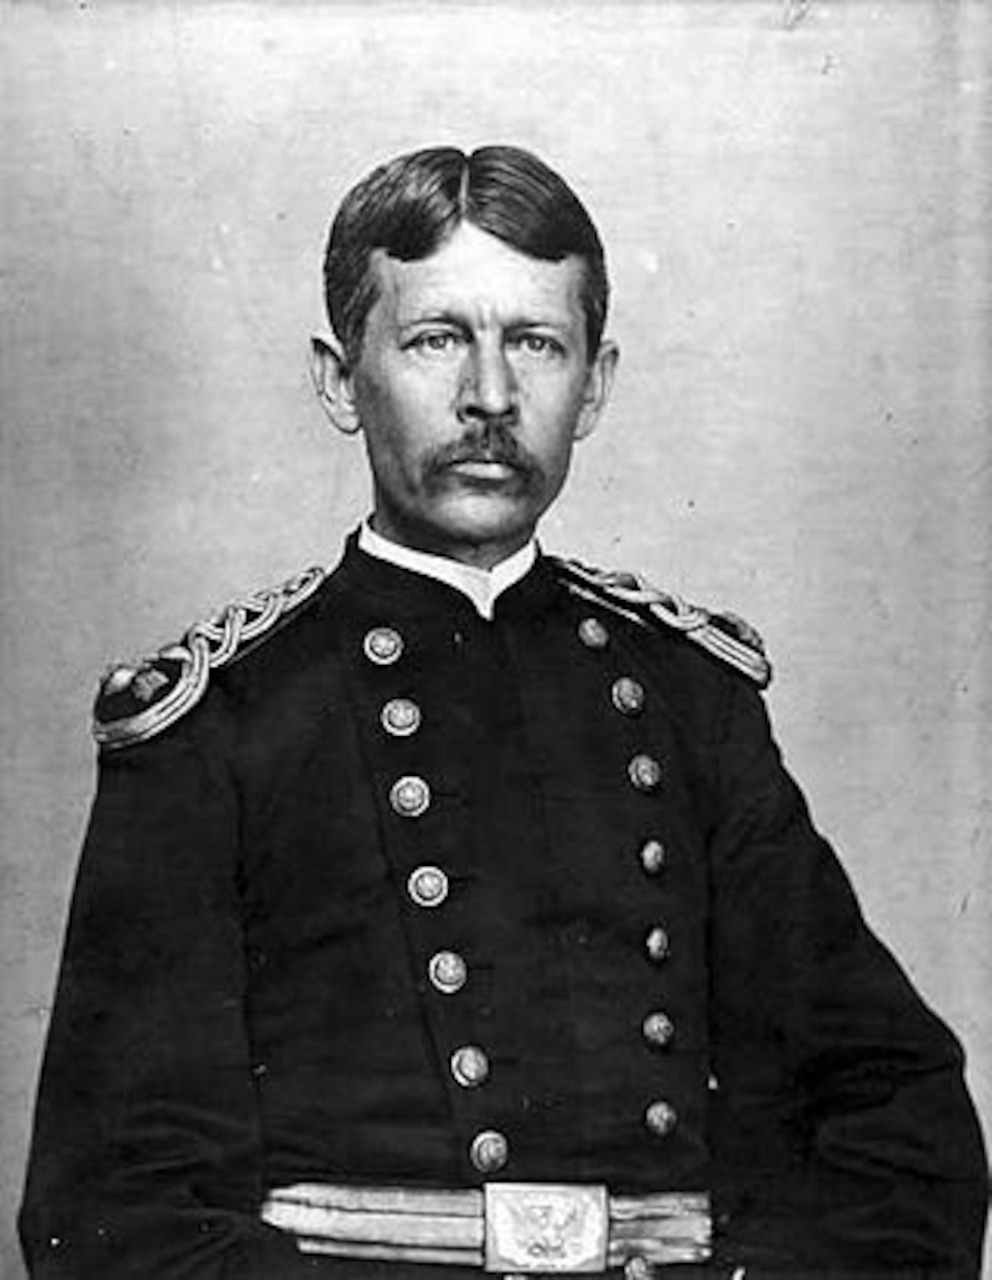 Formal portrait of an Army officer in the late 19th century.